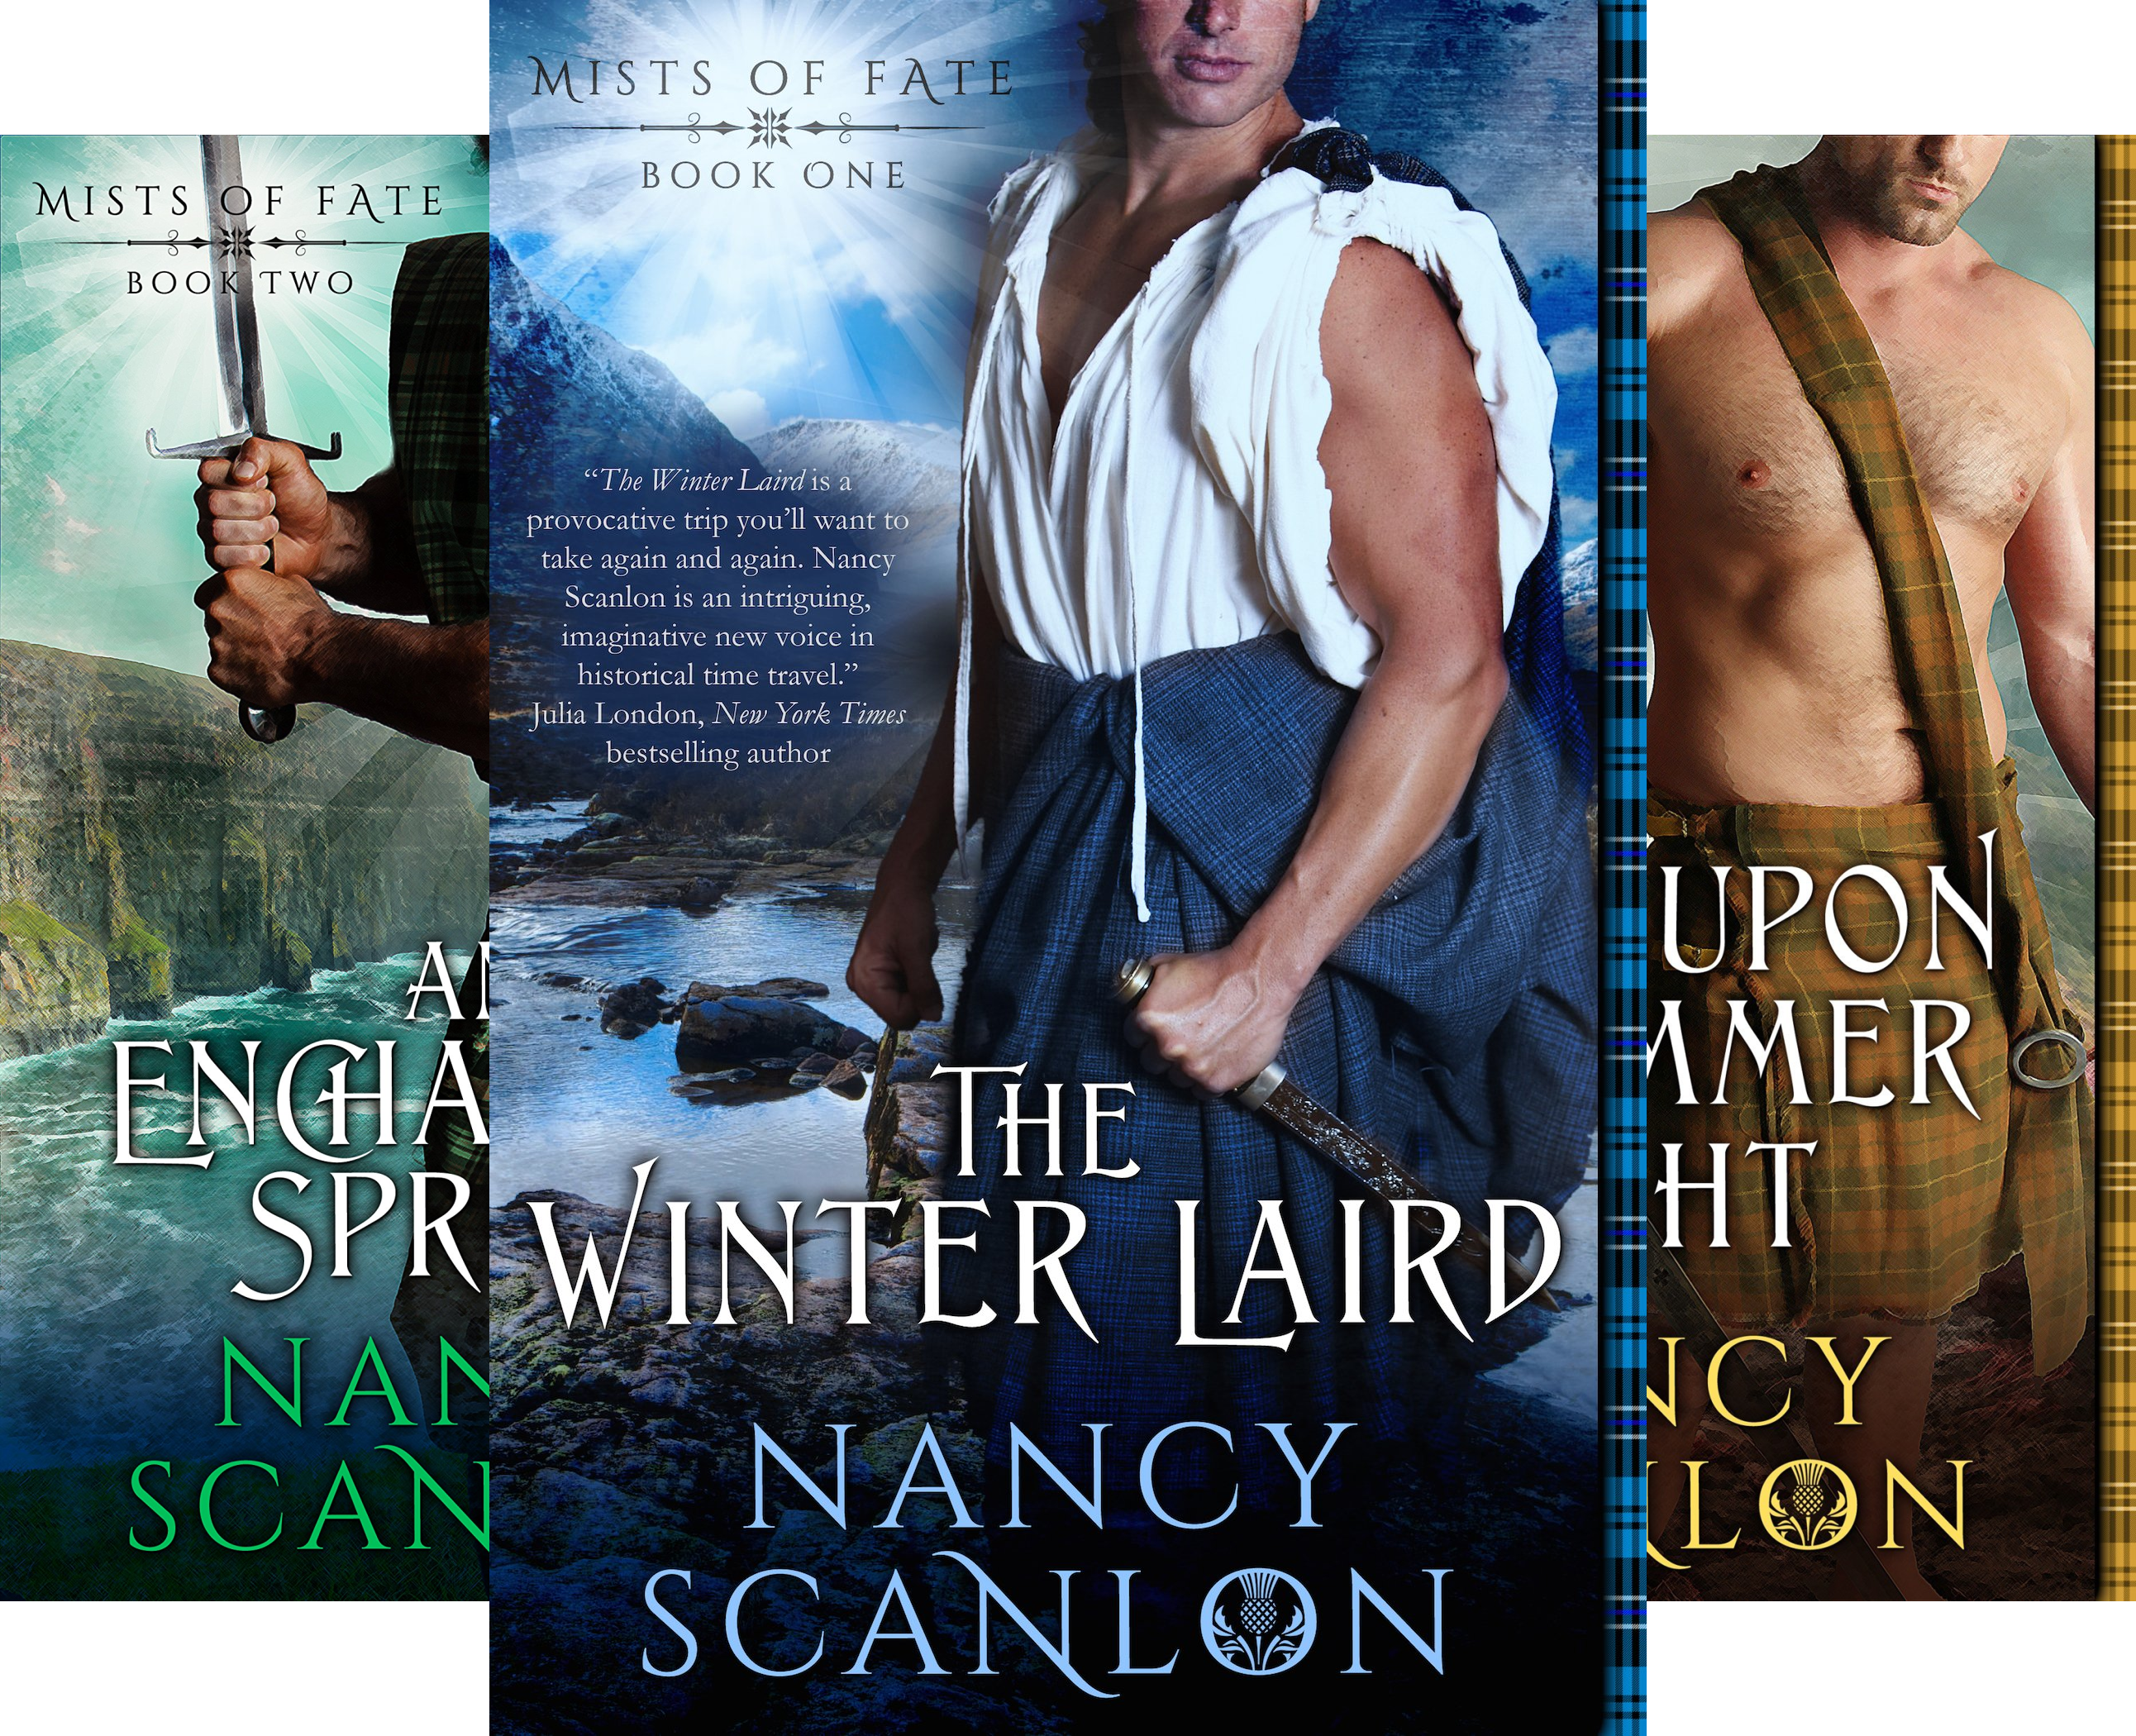 mists-of-fate-3-book-series